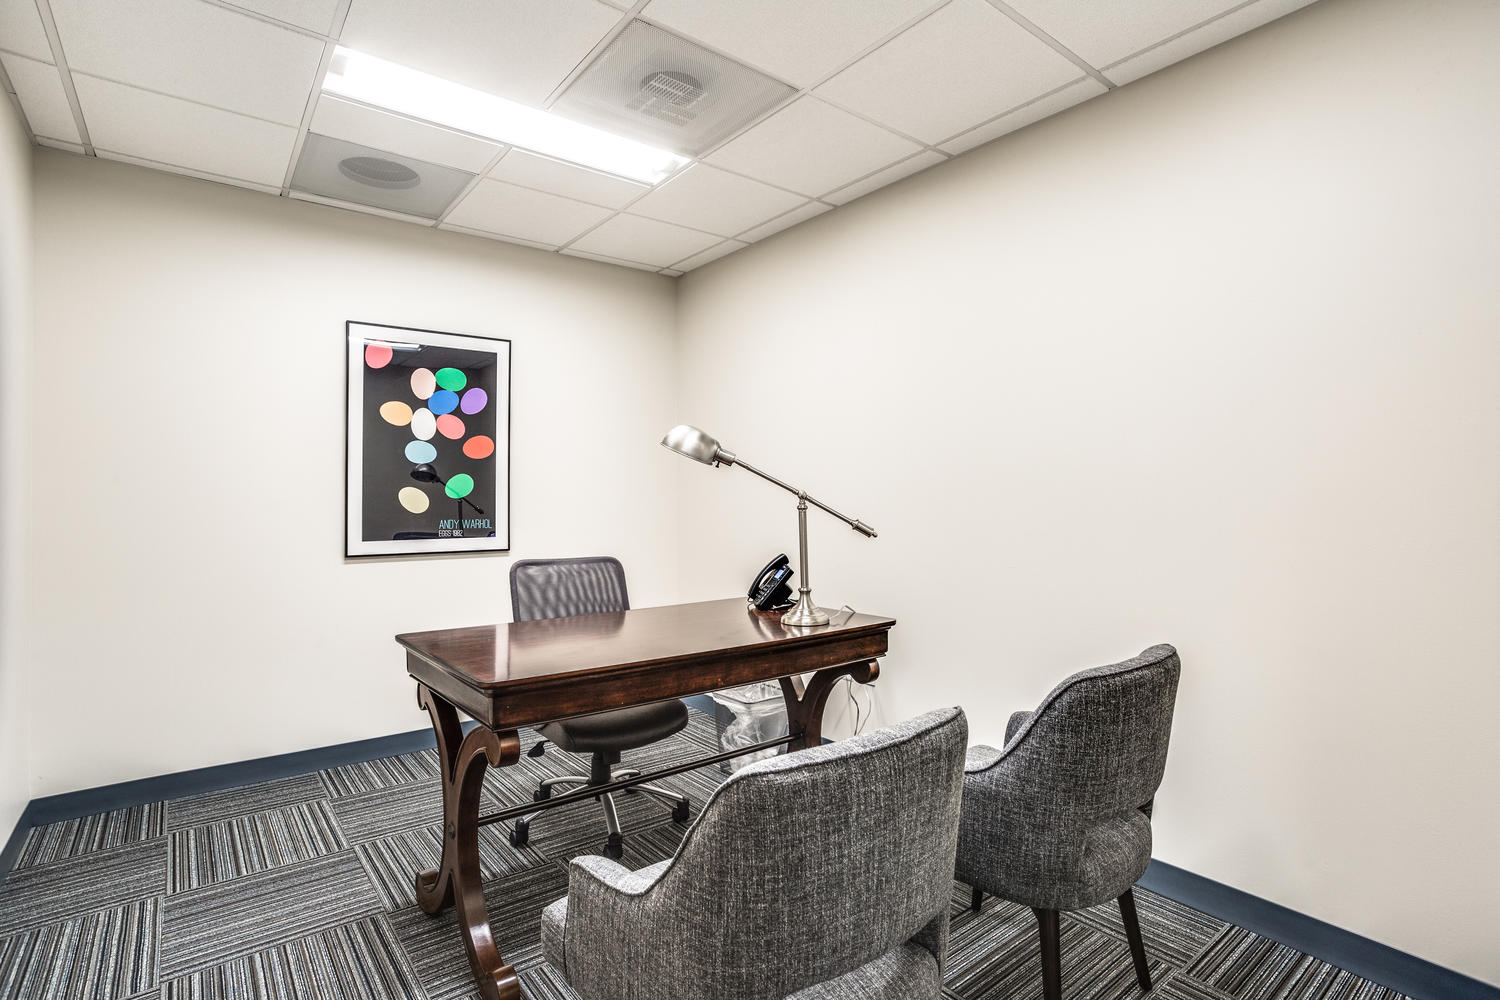 Doctor's private consultation room